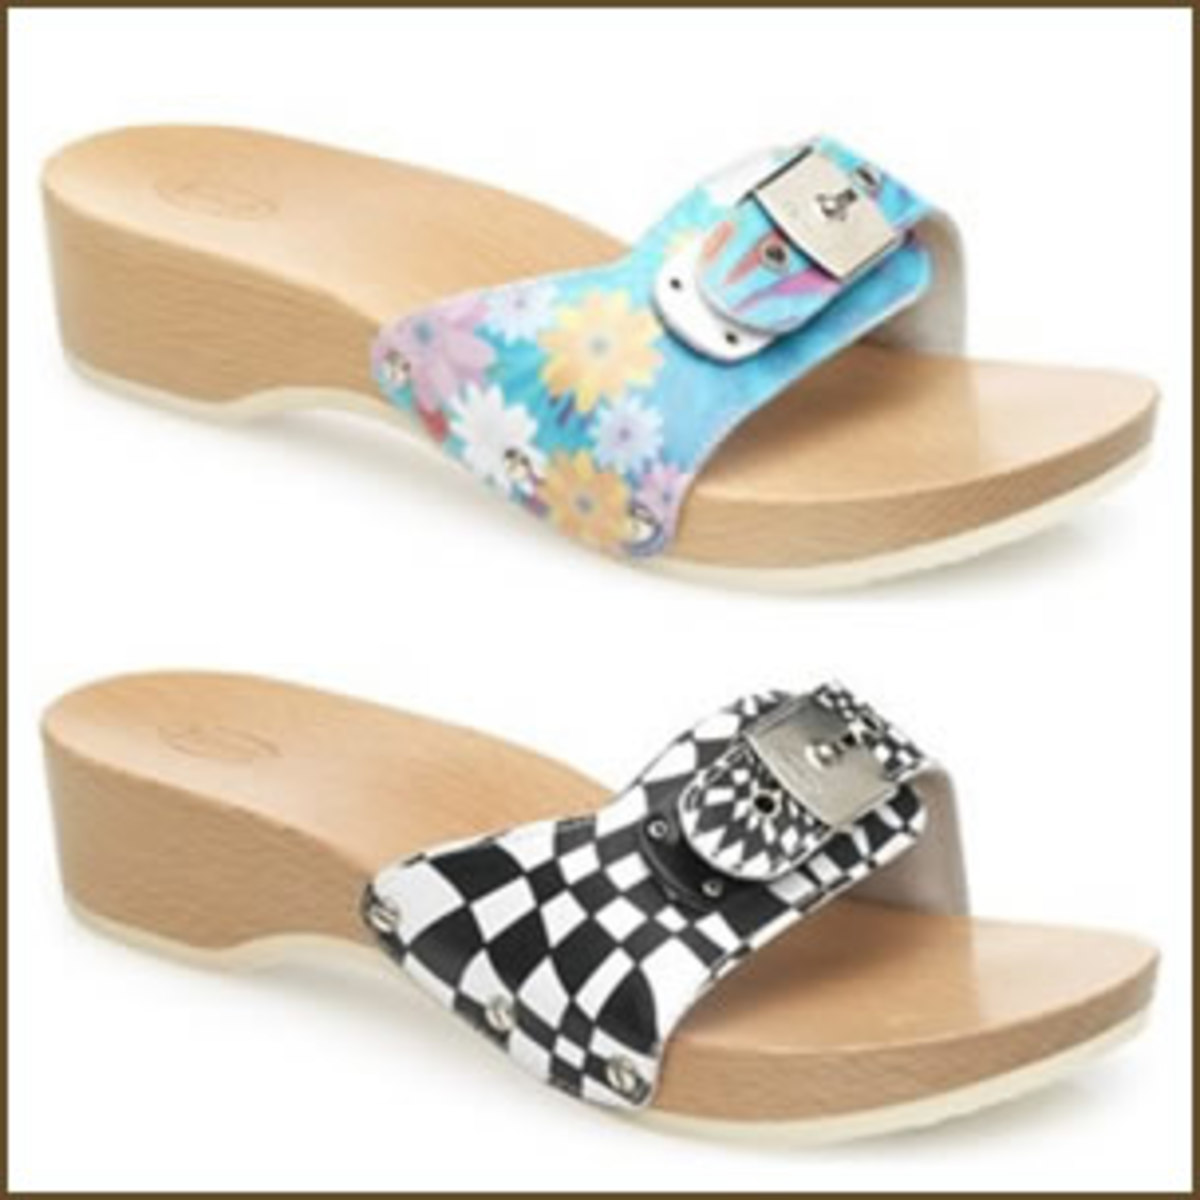 Scholl sandals - The original exercise sandal with a wooden sole